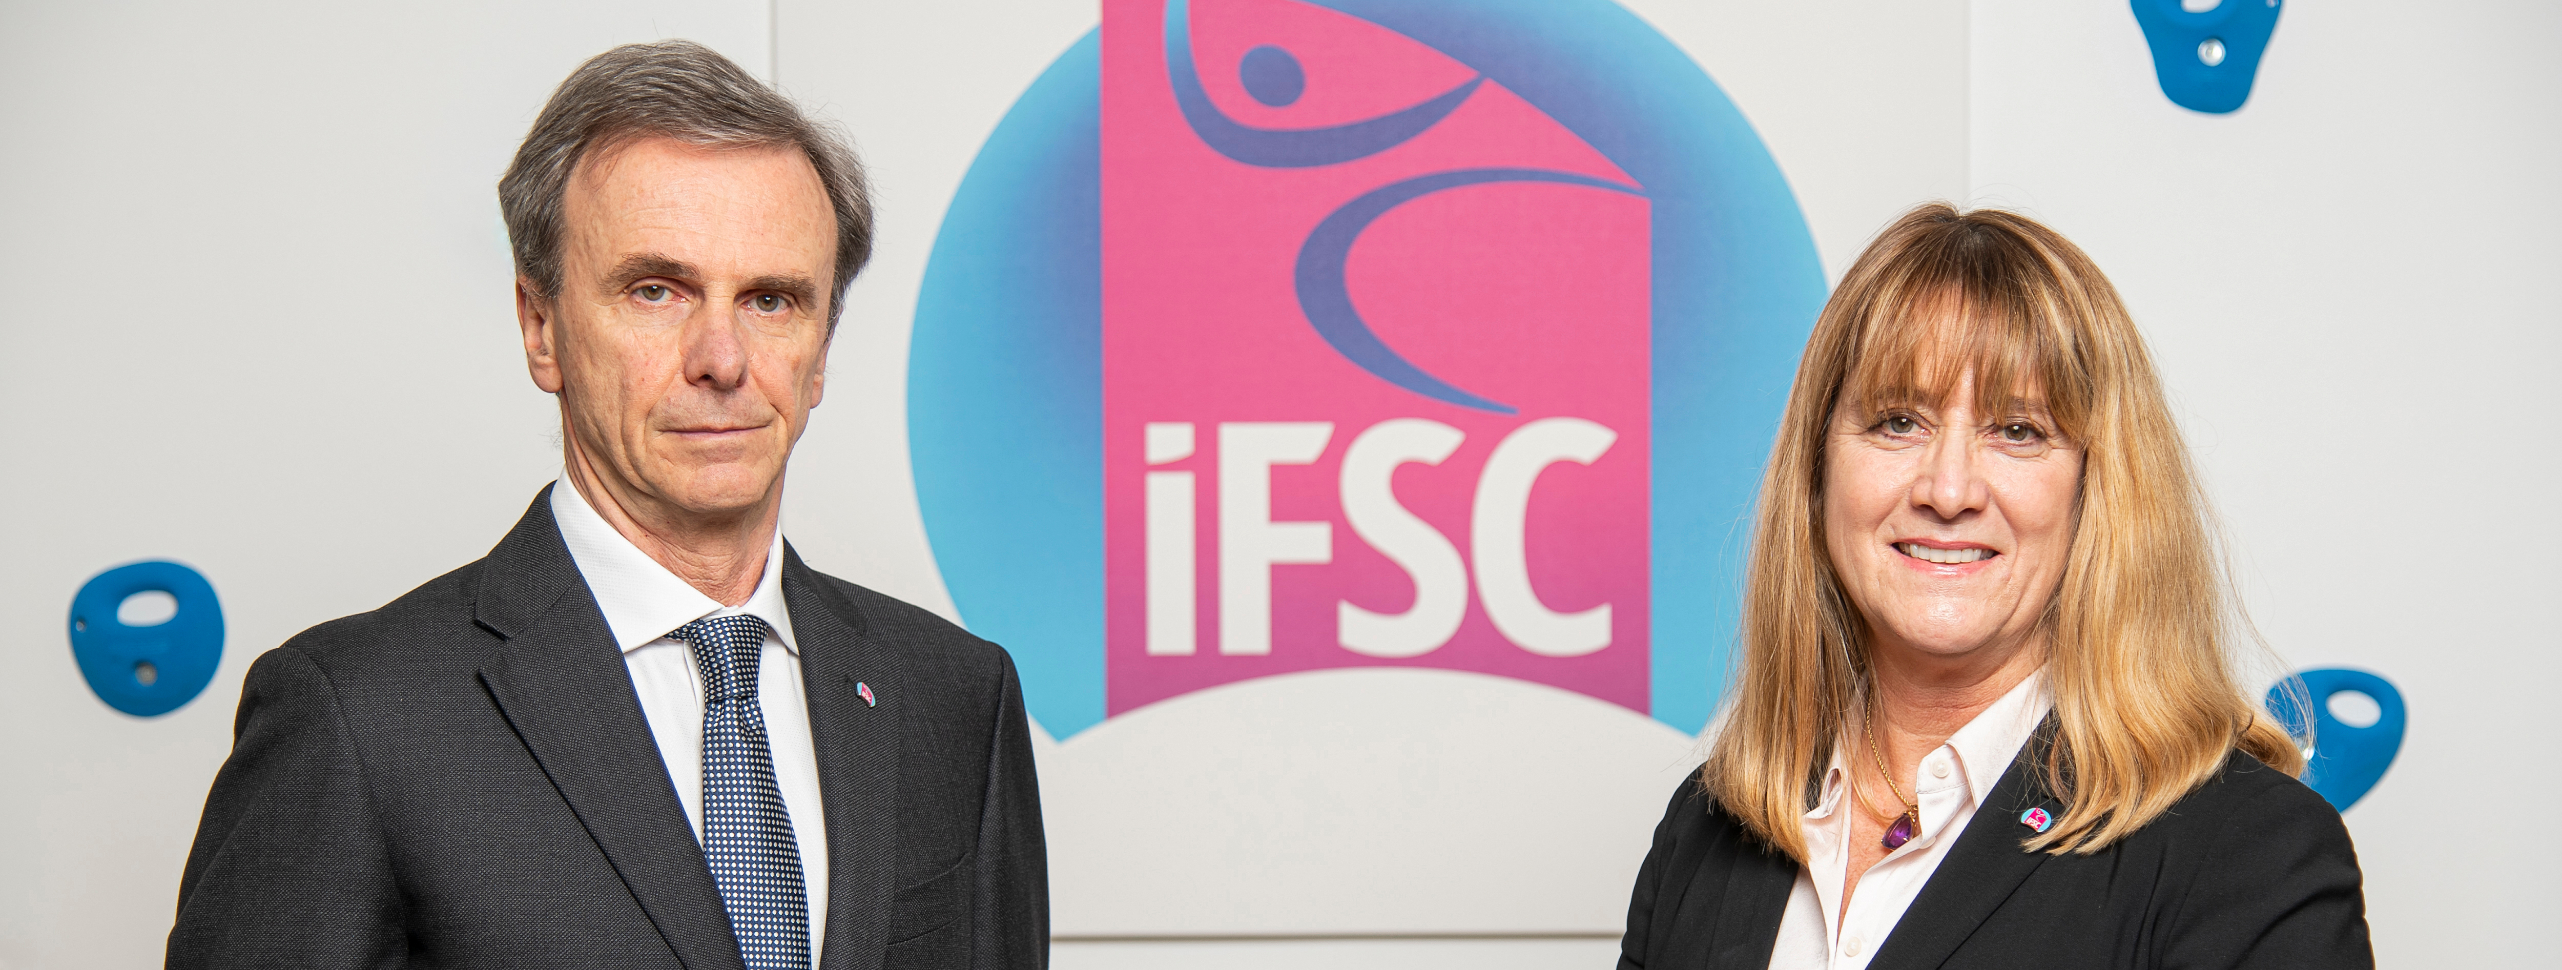 HISTORIC MOMENT FOR SPORT CLIMBING AS IFSC DELEGATION ARRIVES AT TOKYO 2020